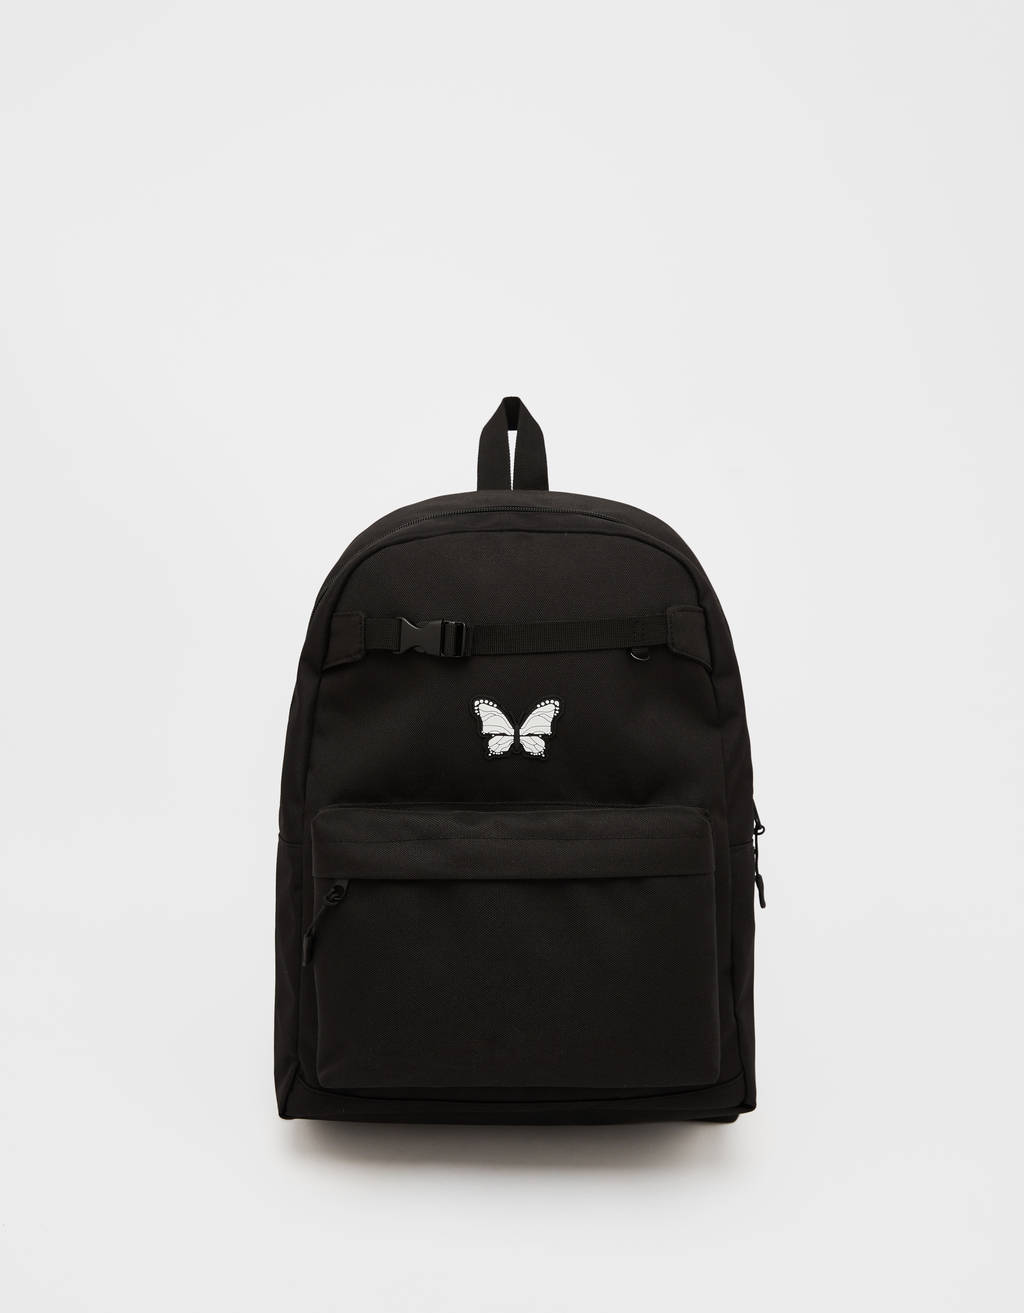 Multi-pocket backpack with butterfly